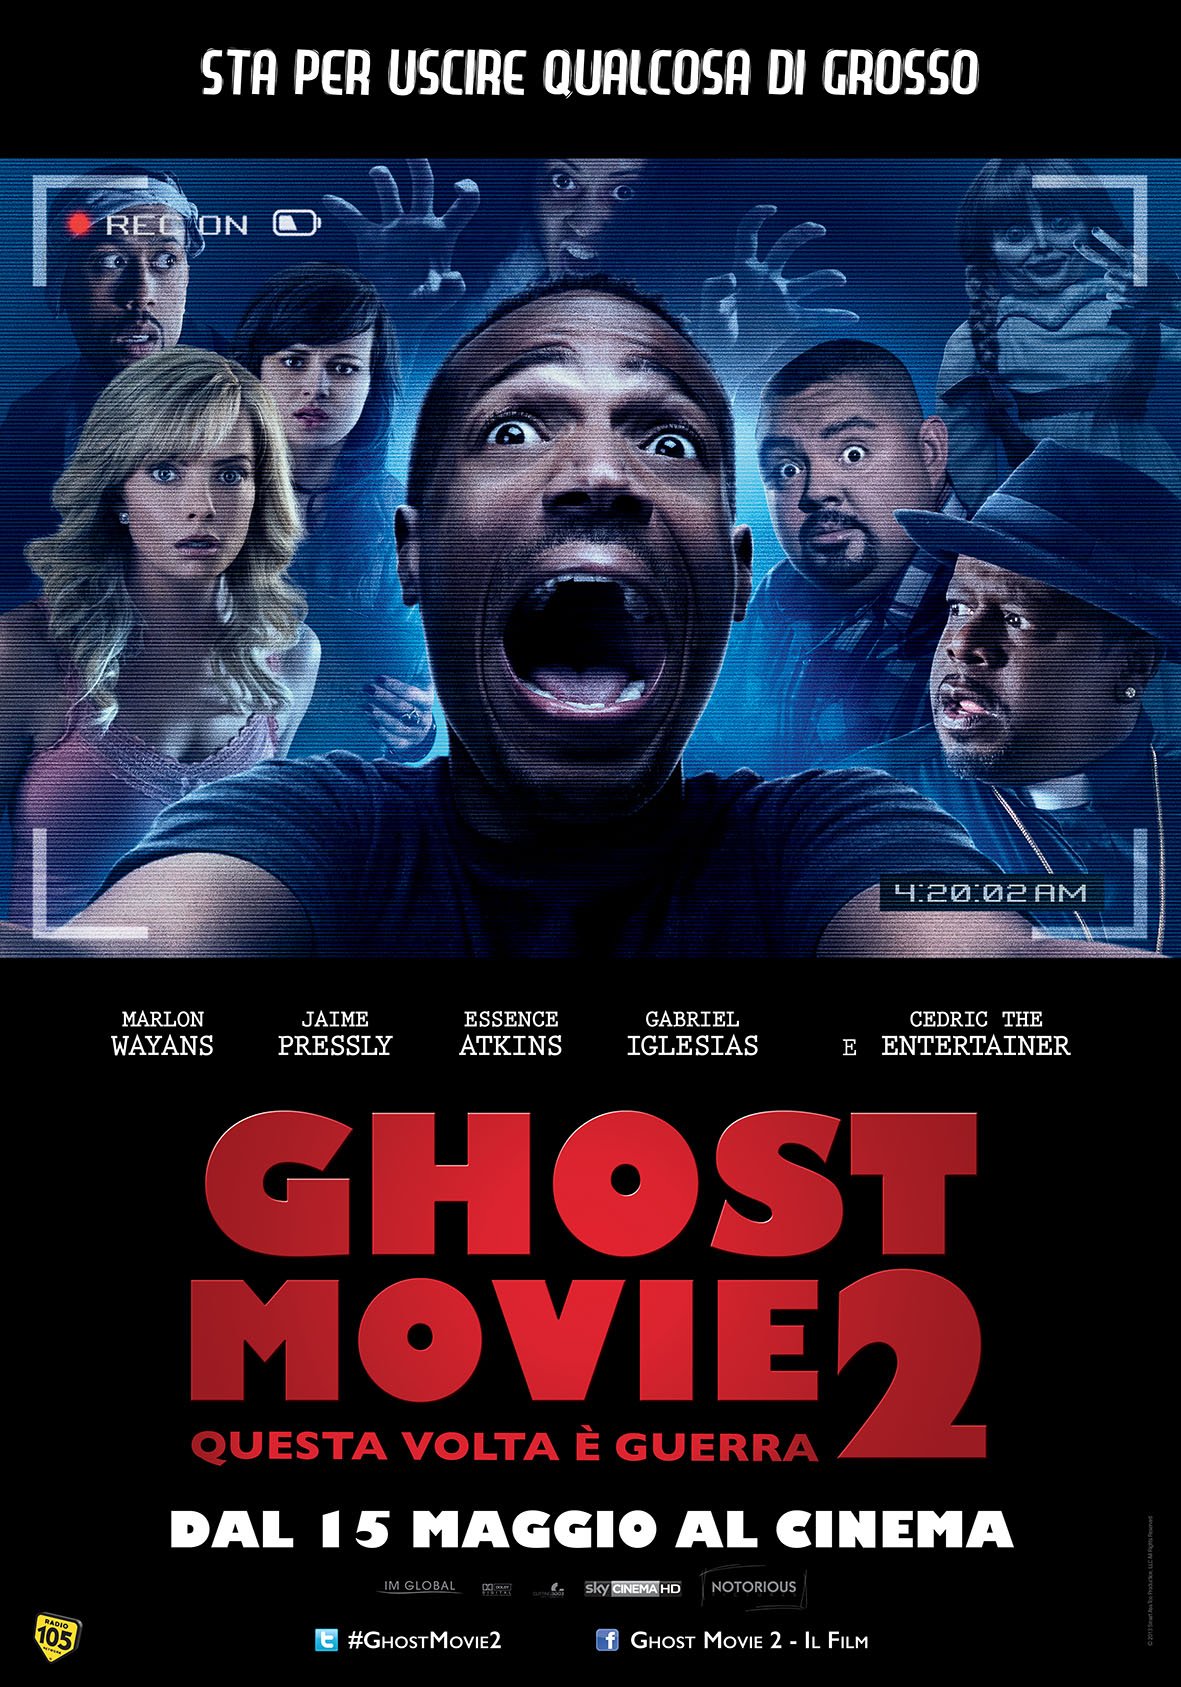 GHOST MOVIE 2 – QUESTA VOLTA È GUERRA